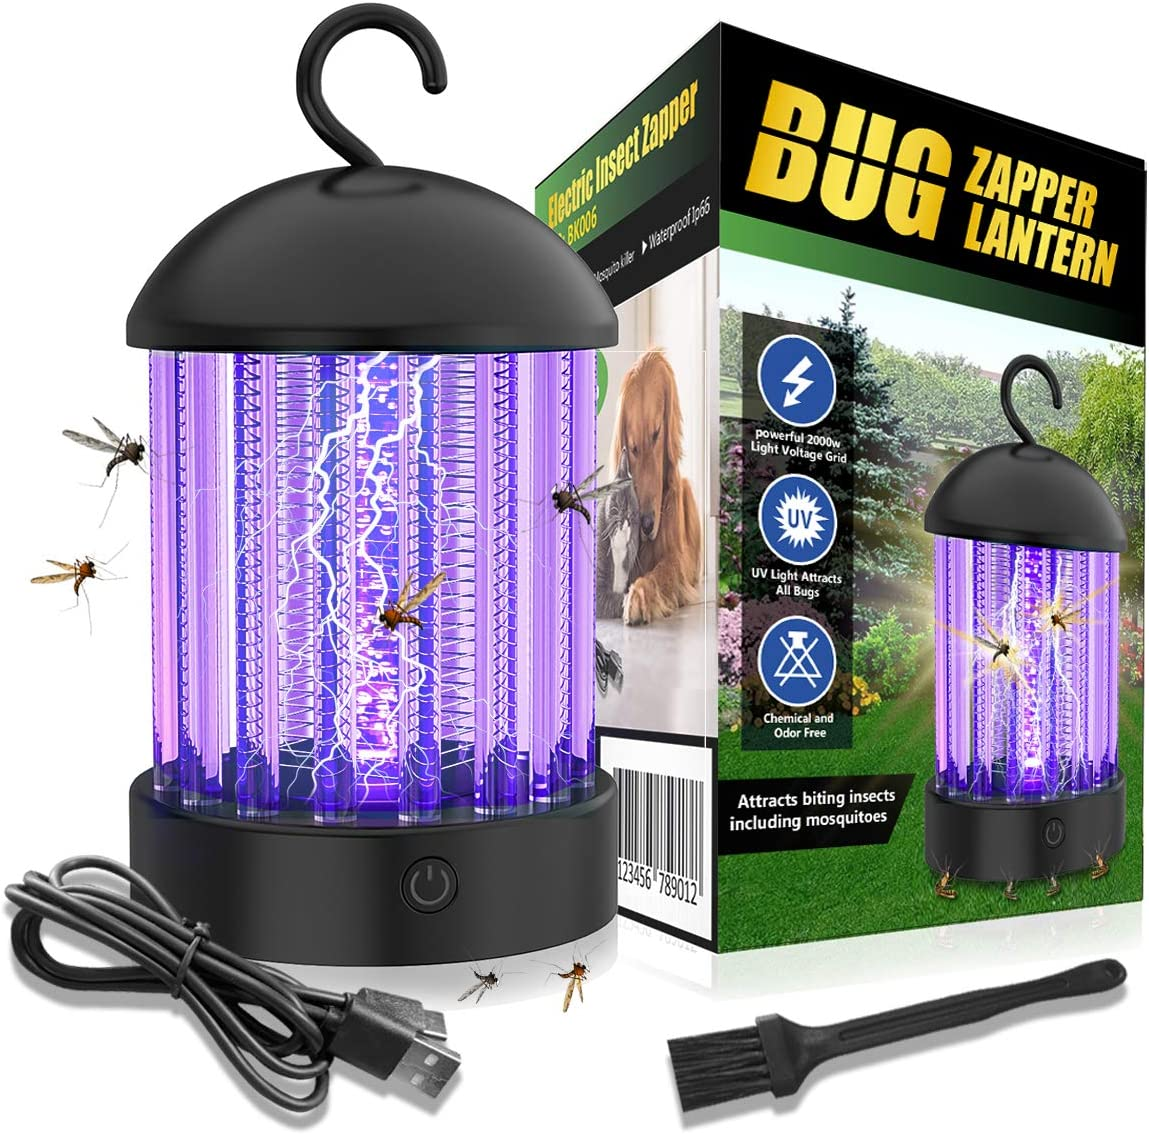 110V Uonlytech 2pcs Bug Zapper Light Bulb UV LED Electronic Mosquito Killer Lamp Insect Zapper Bug Fly Trap for Outdoor Porch Patio Backyard Bedroom